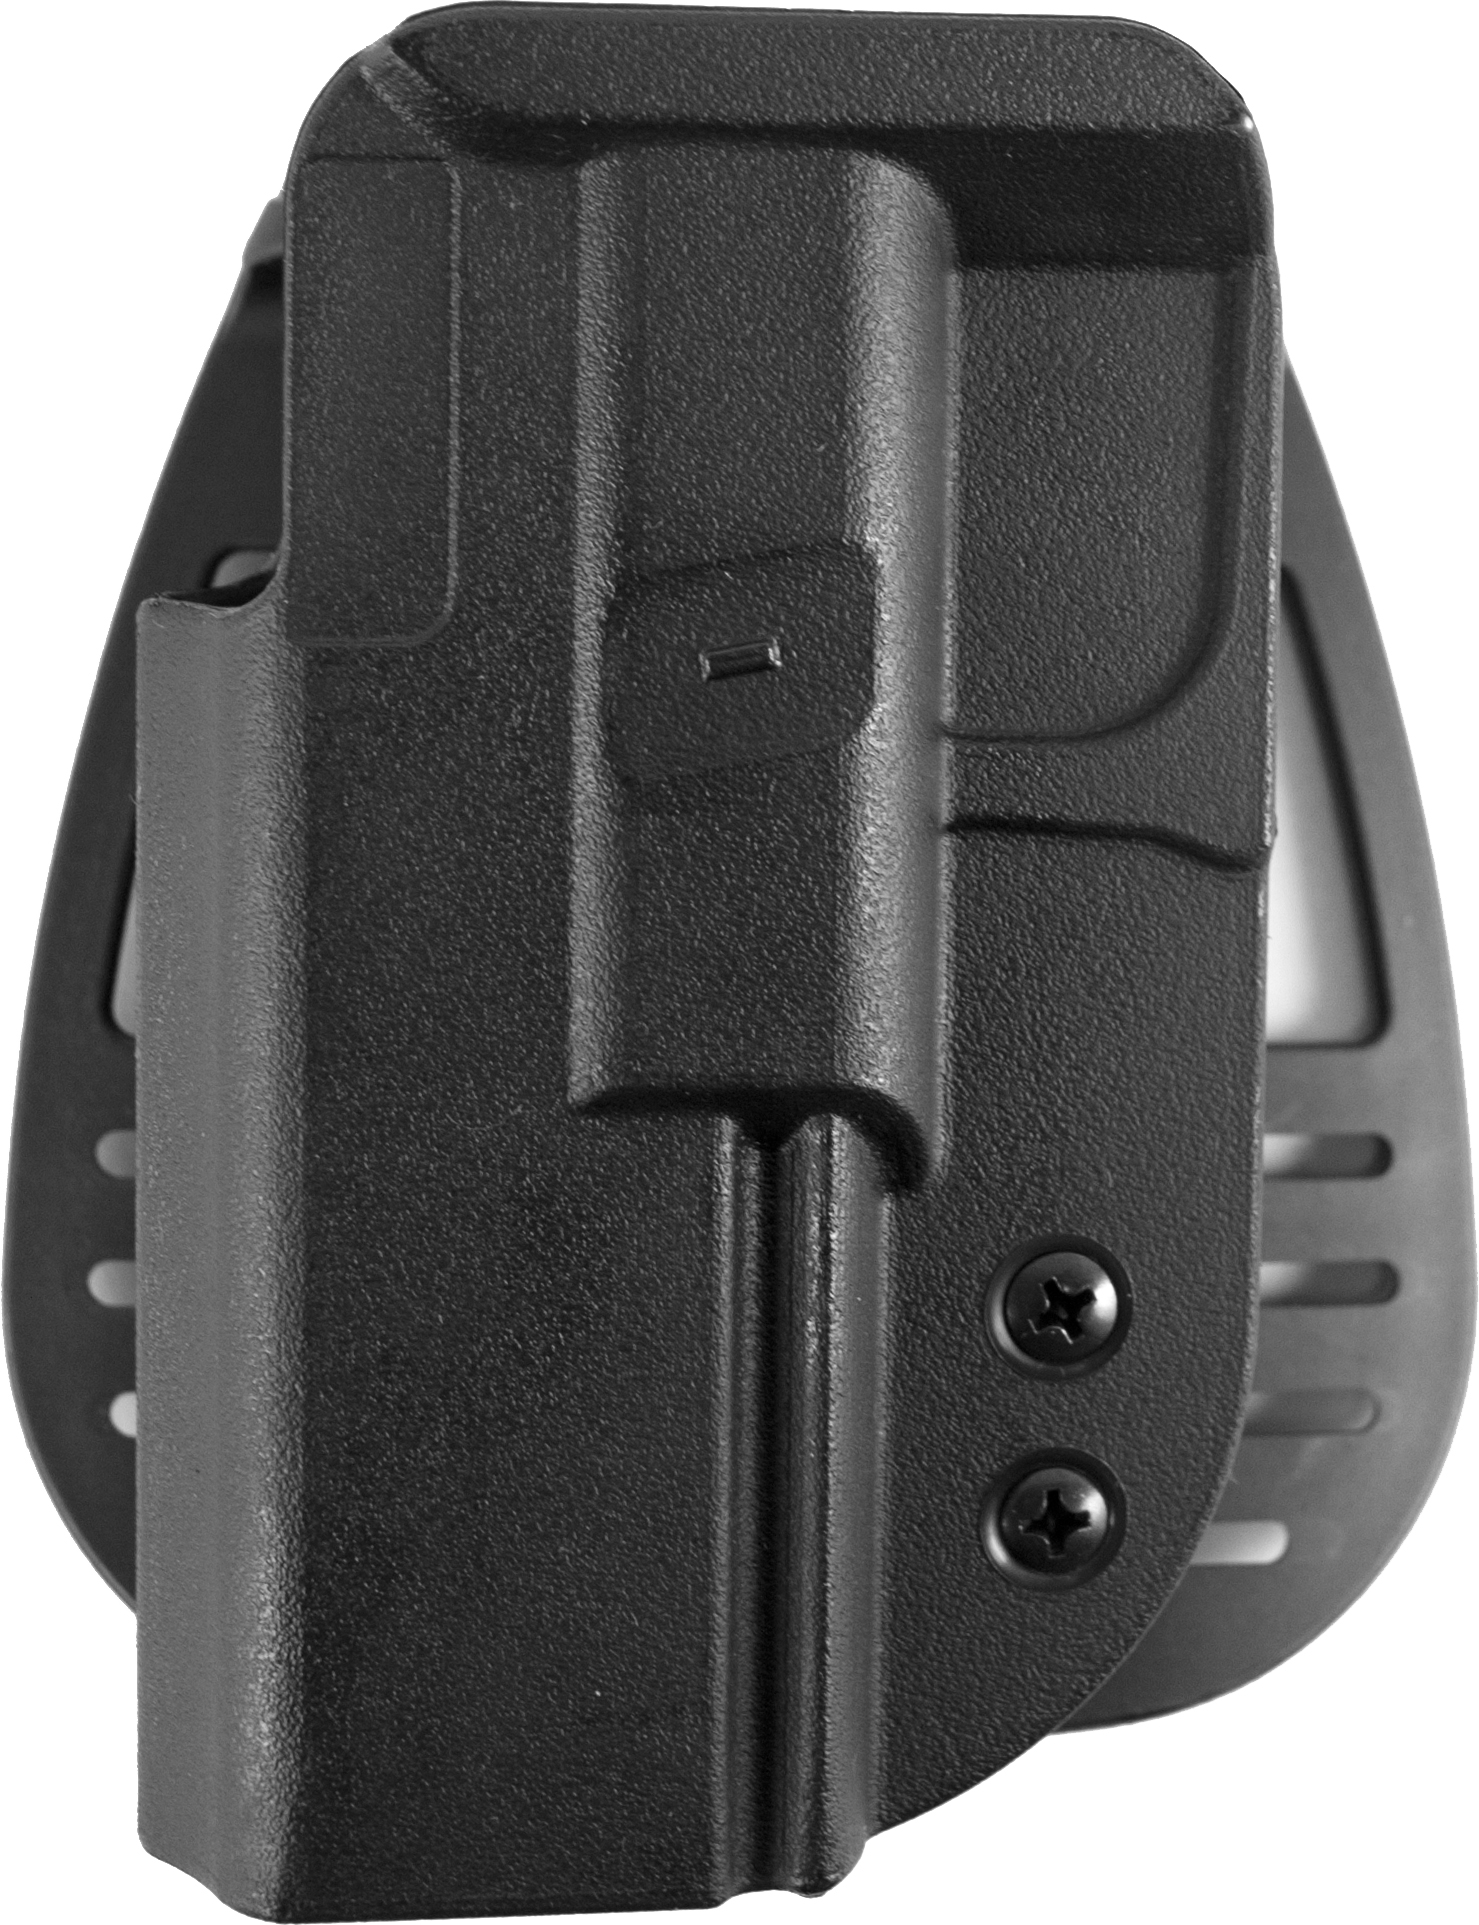 Uncle Mike's Kydex Open Top Paddle Holster Glock 17, 19, 22, 23 5421